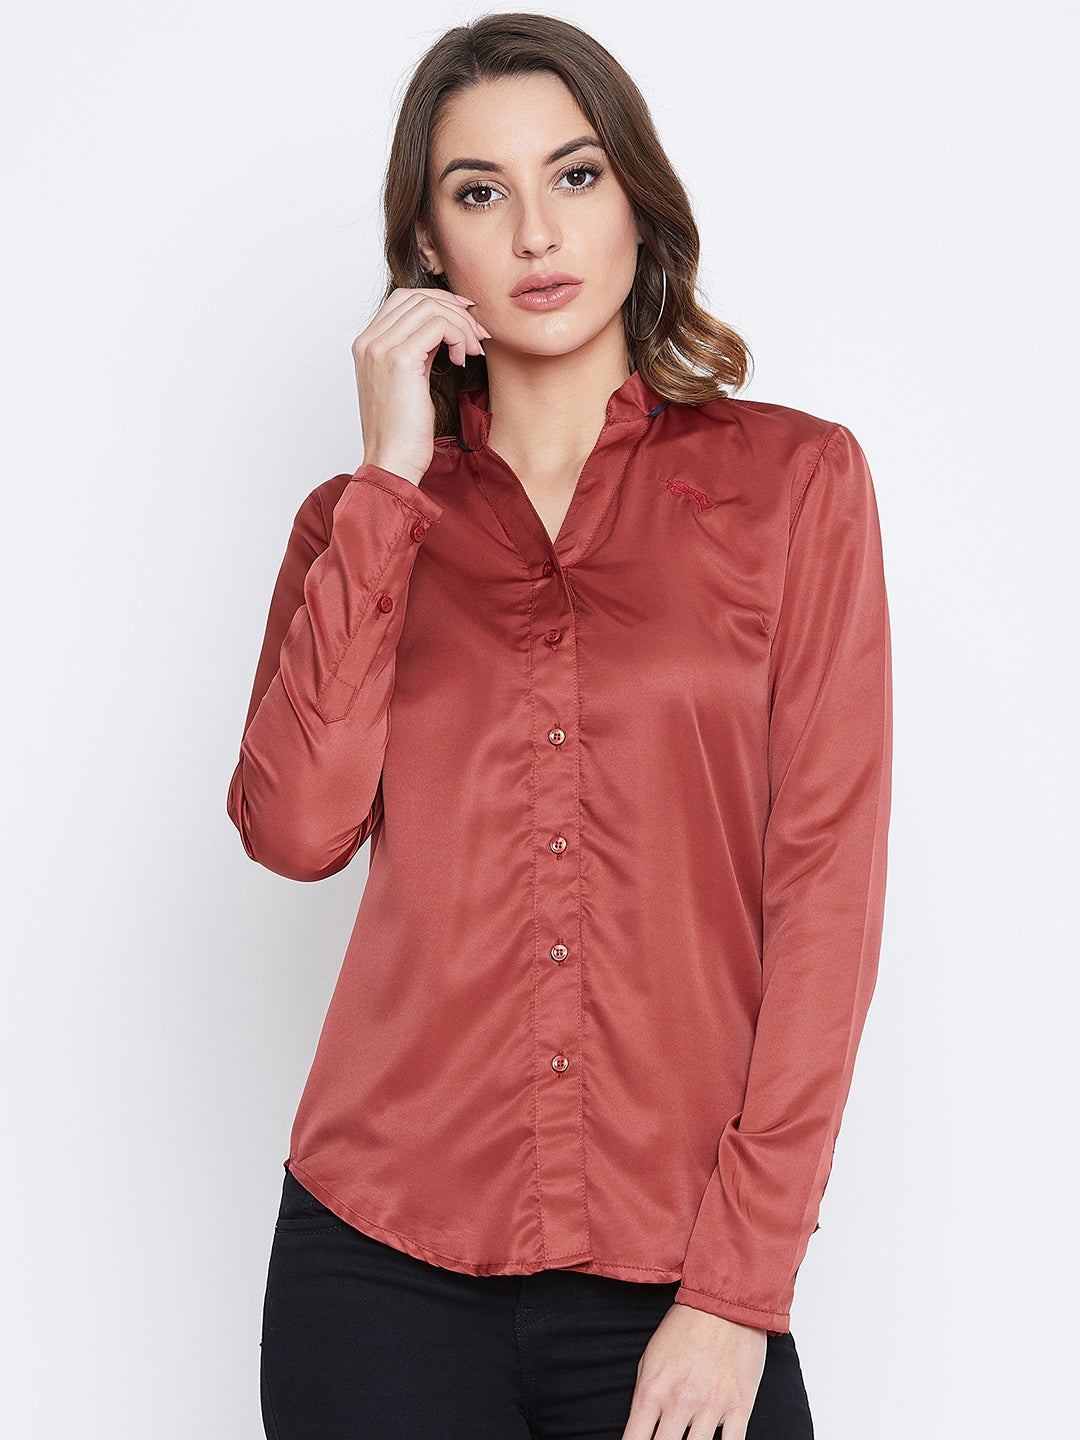 JUMP USA Women Red Solid Casual Shirts